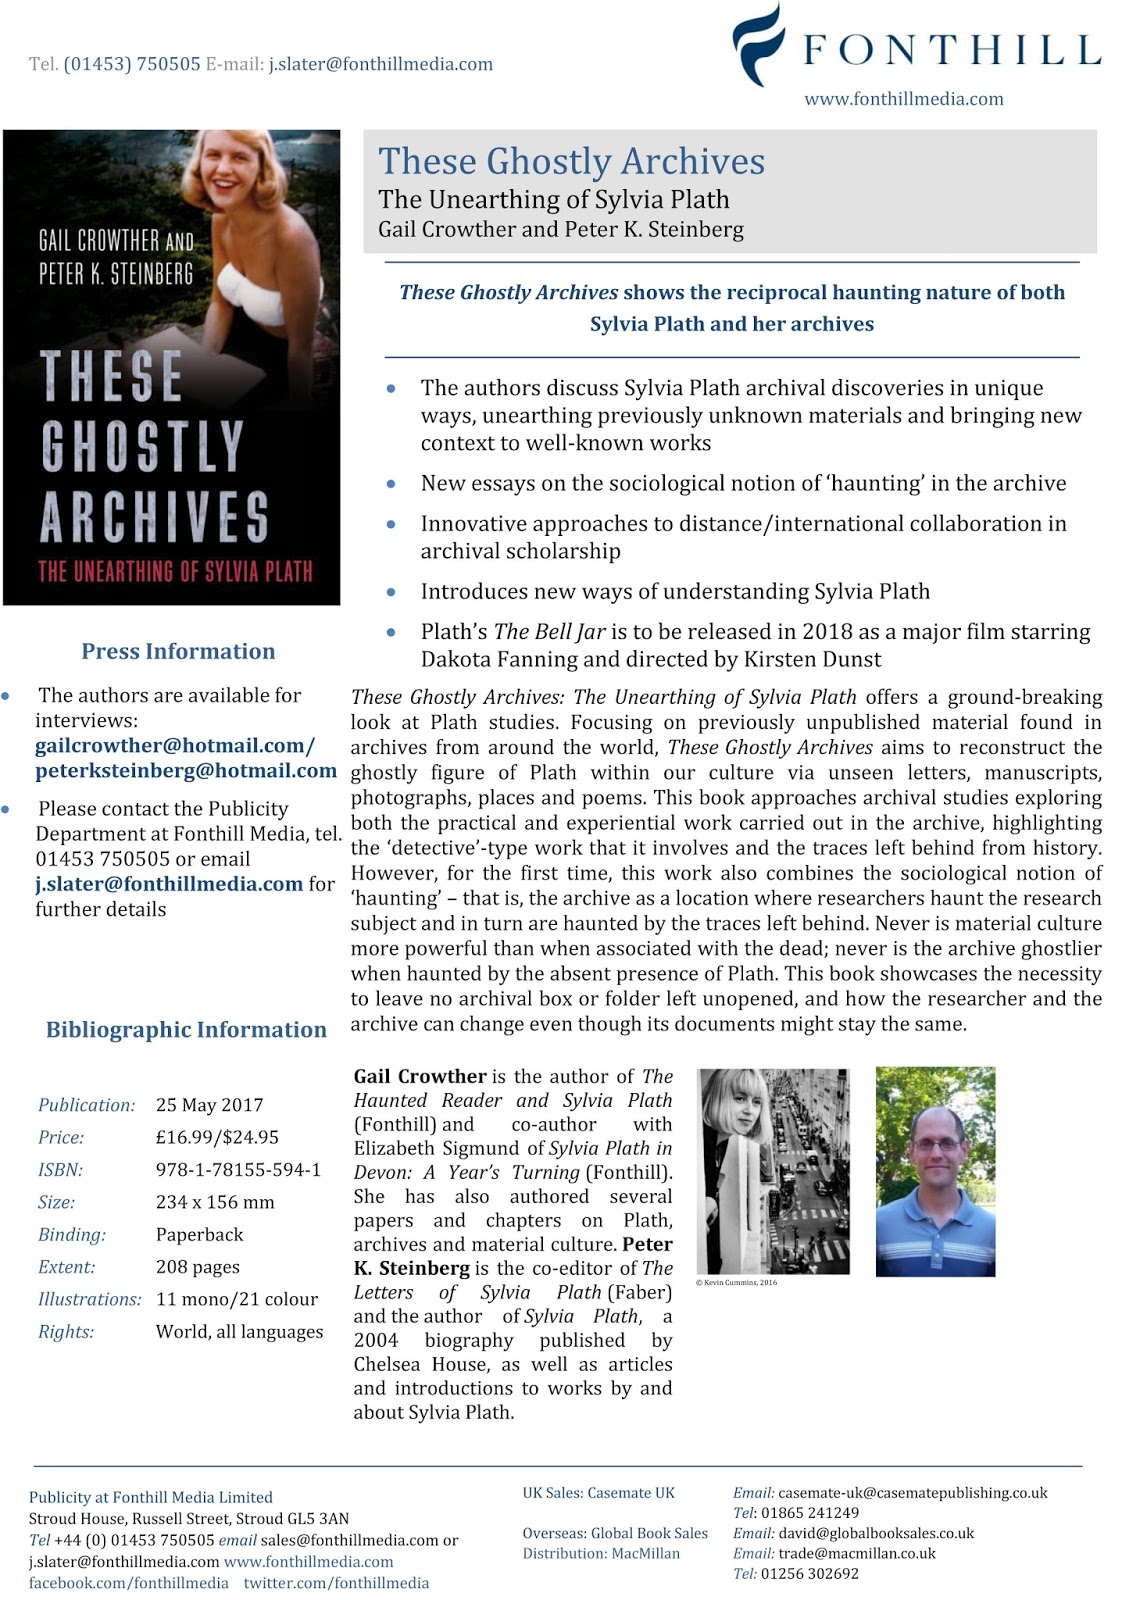 sylvia plath essay phd thesis on sylvia plath sylvia plath women s  sylvia plath info update these ghostly archives the unearthing from the start to nearly at the